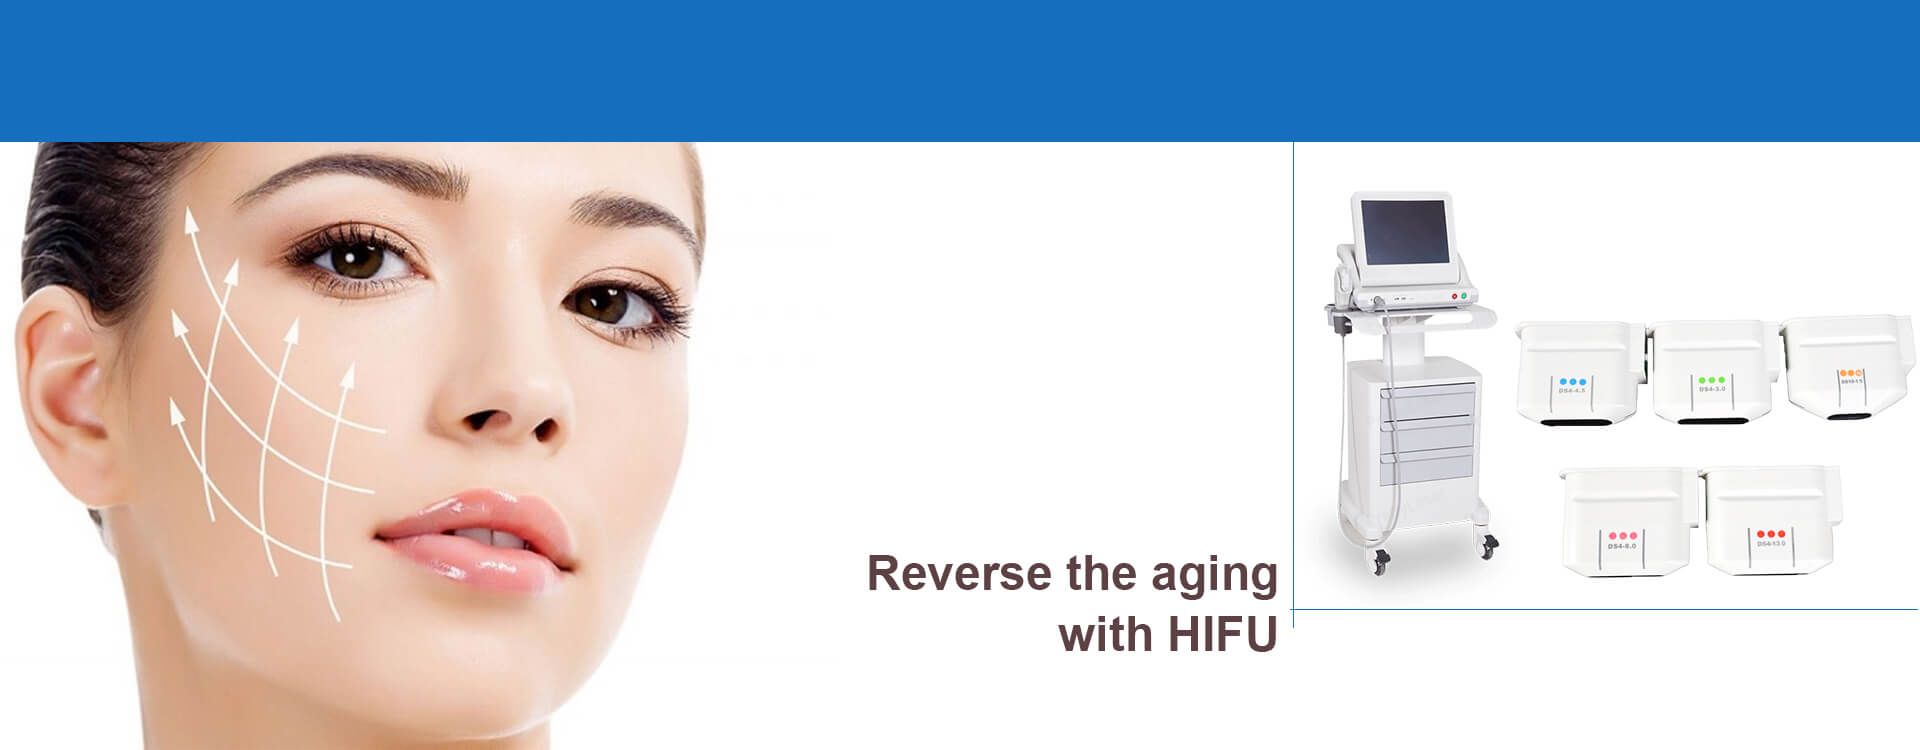 How Does HIFU Therapy Work In Skin Tightening?